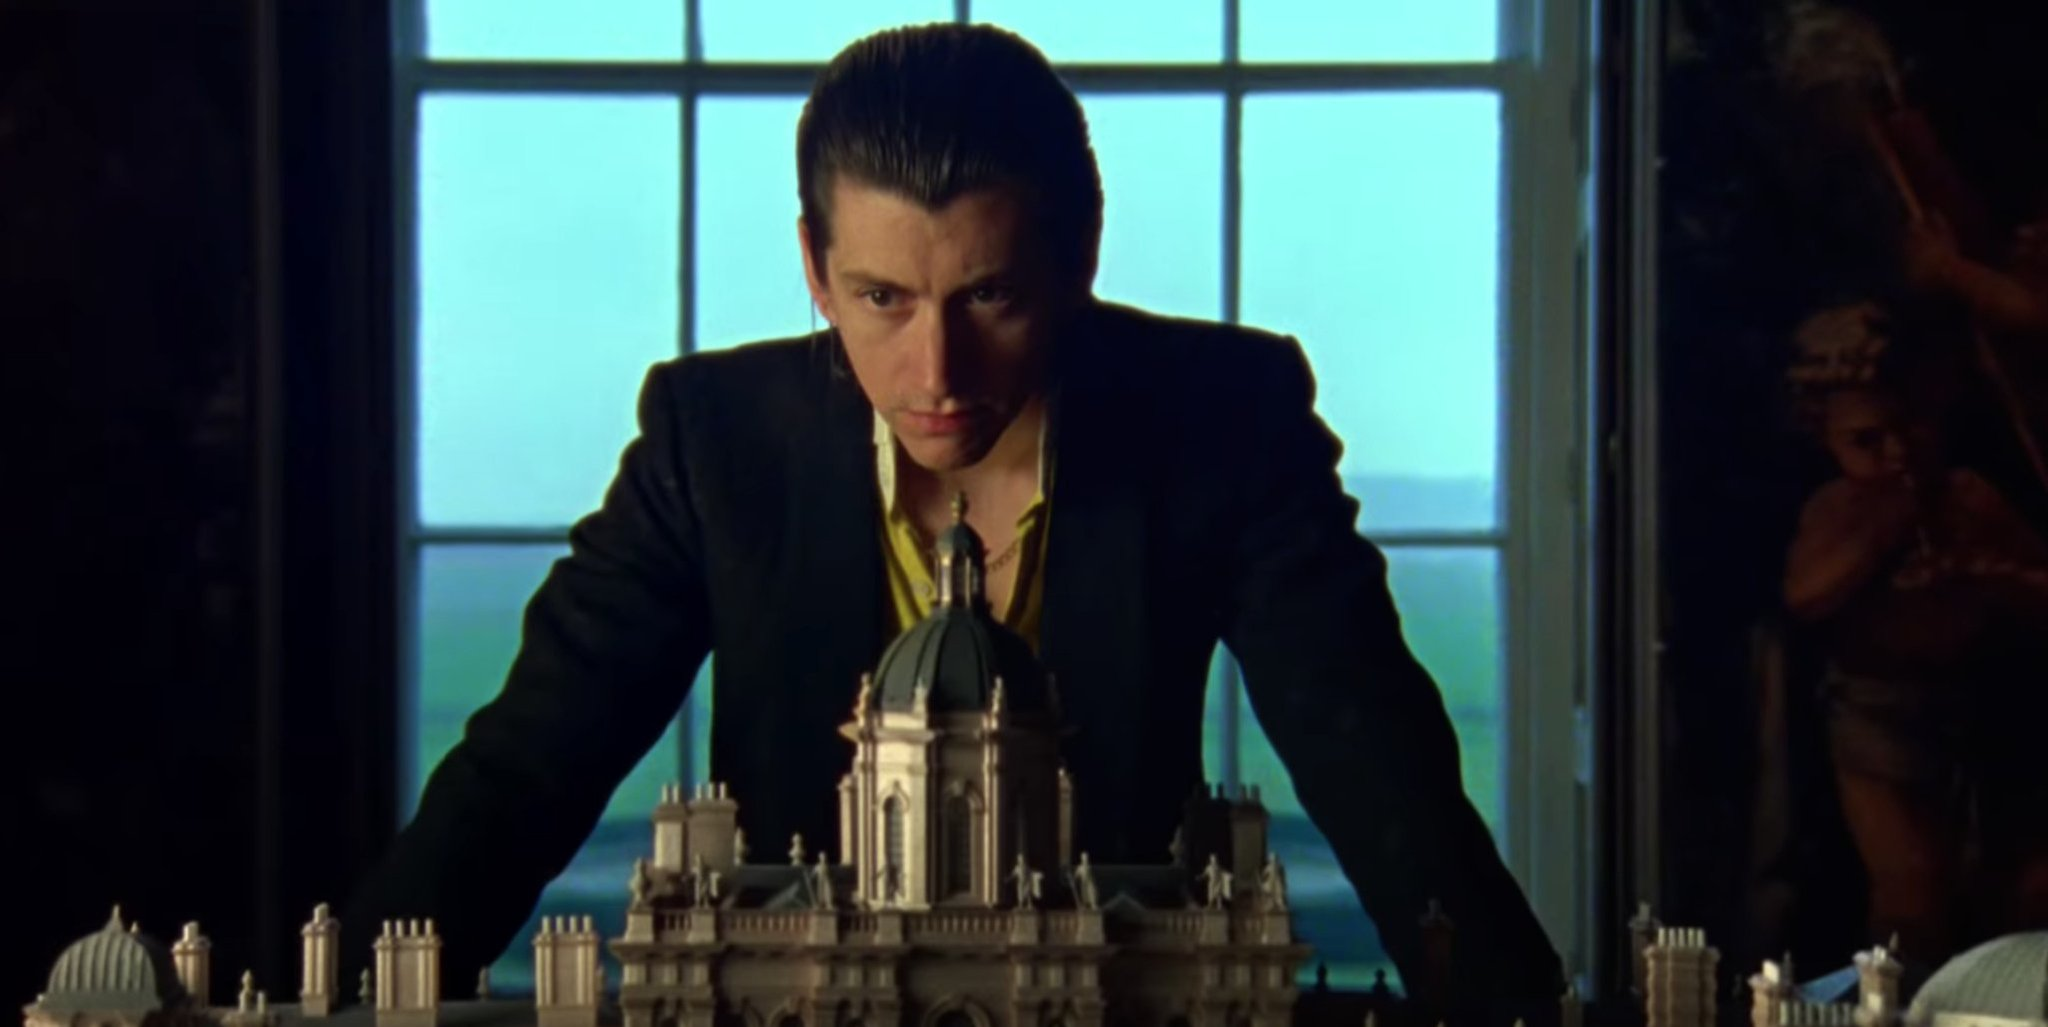 """Watch @ArcticMonkeys' new video for """"Four Out Of Five"""" https://t.co/CL9hOwV2zi https://t.co/Y1qZ2UW9Tm"""